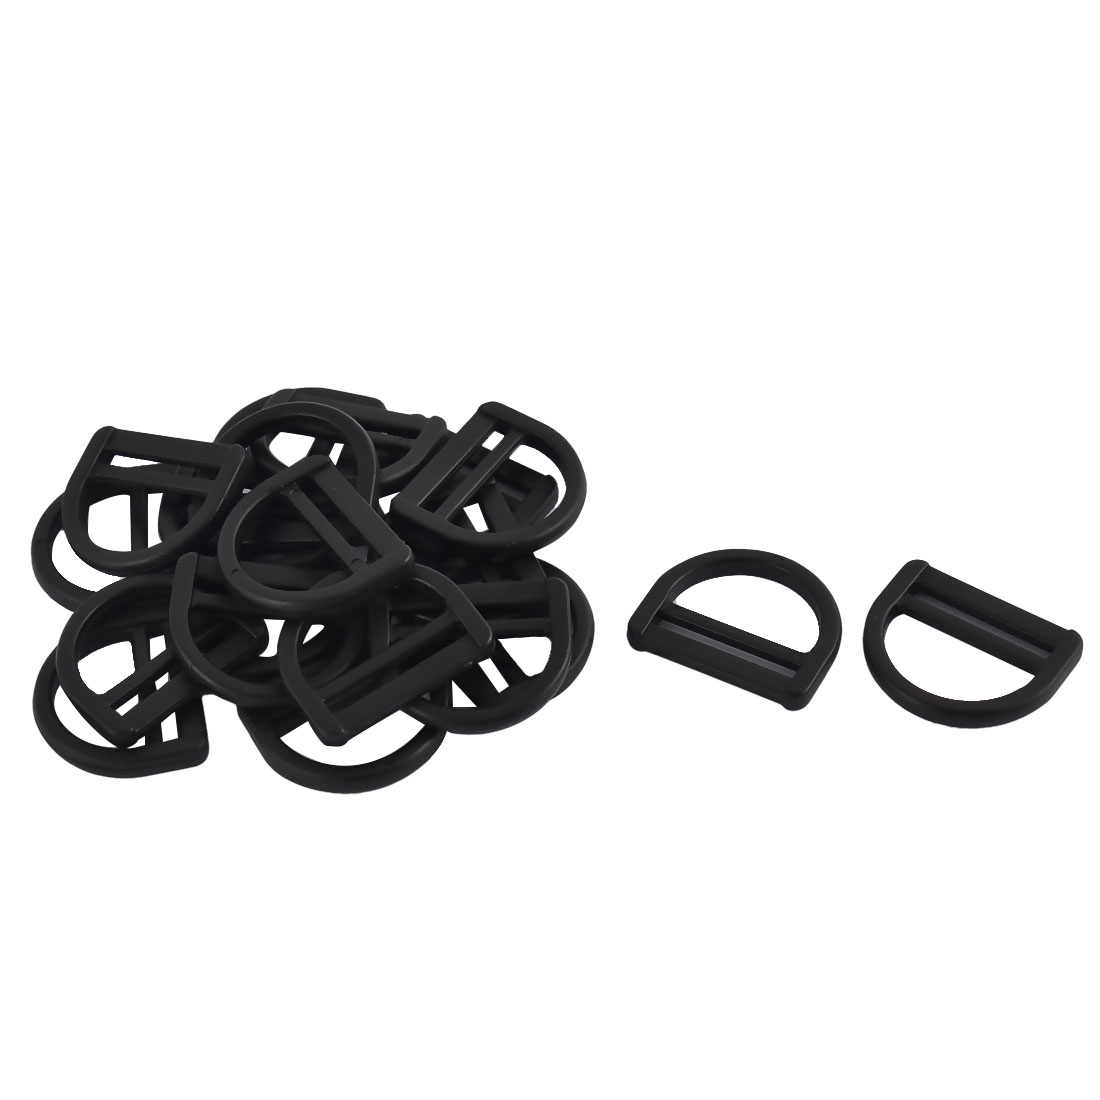 Suitcase Plastic D Shaped Removable Belt Strap Bag Buckles Black 25mm 20pcs